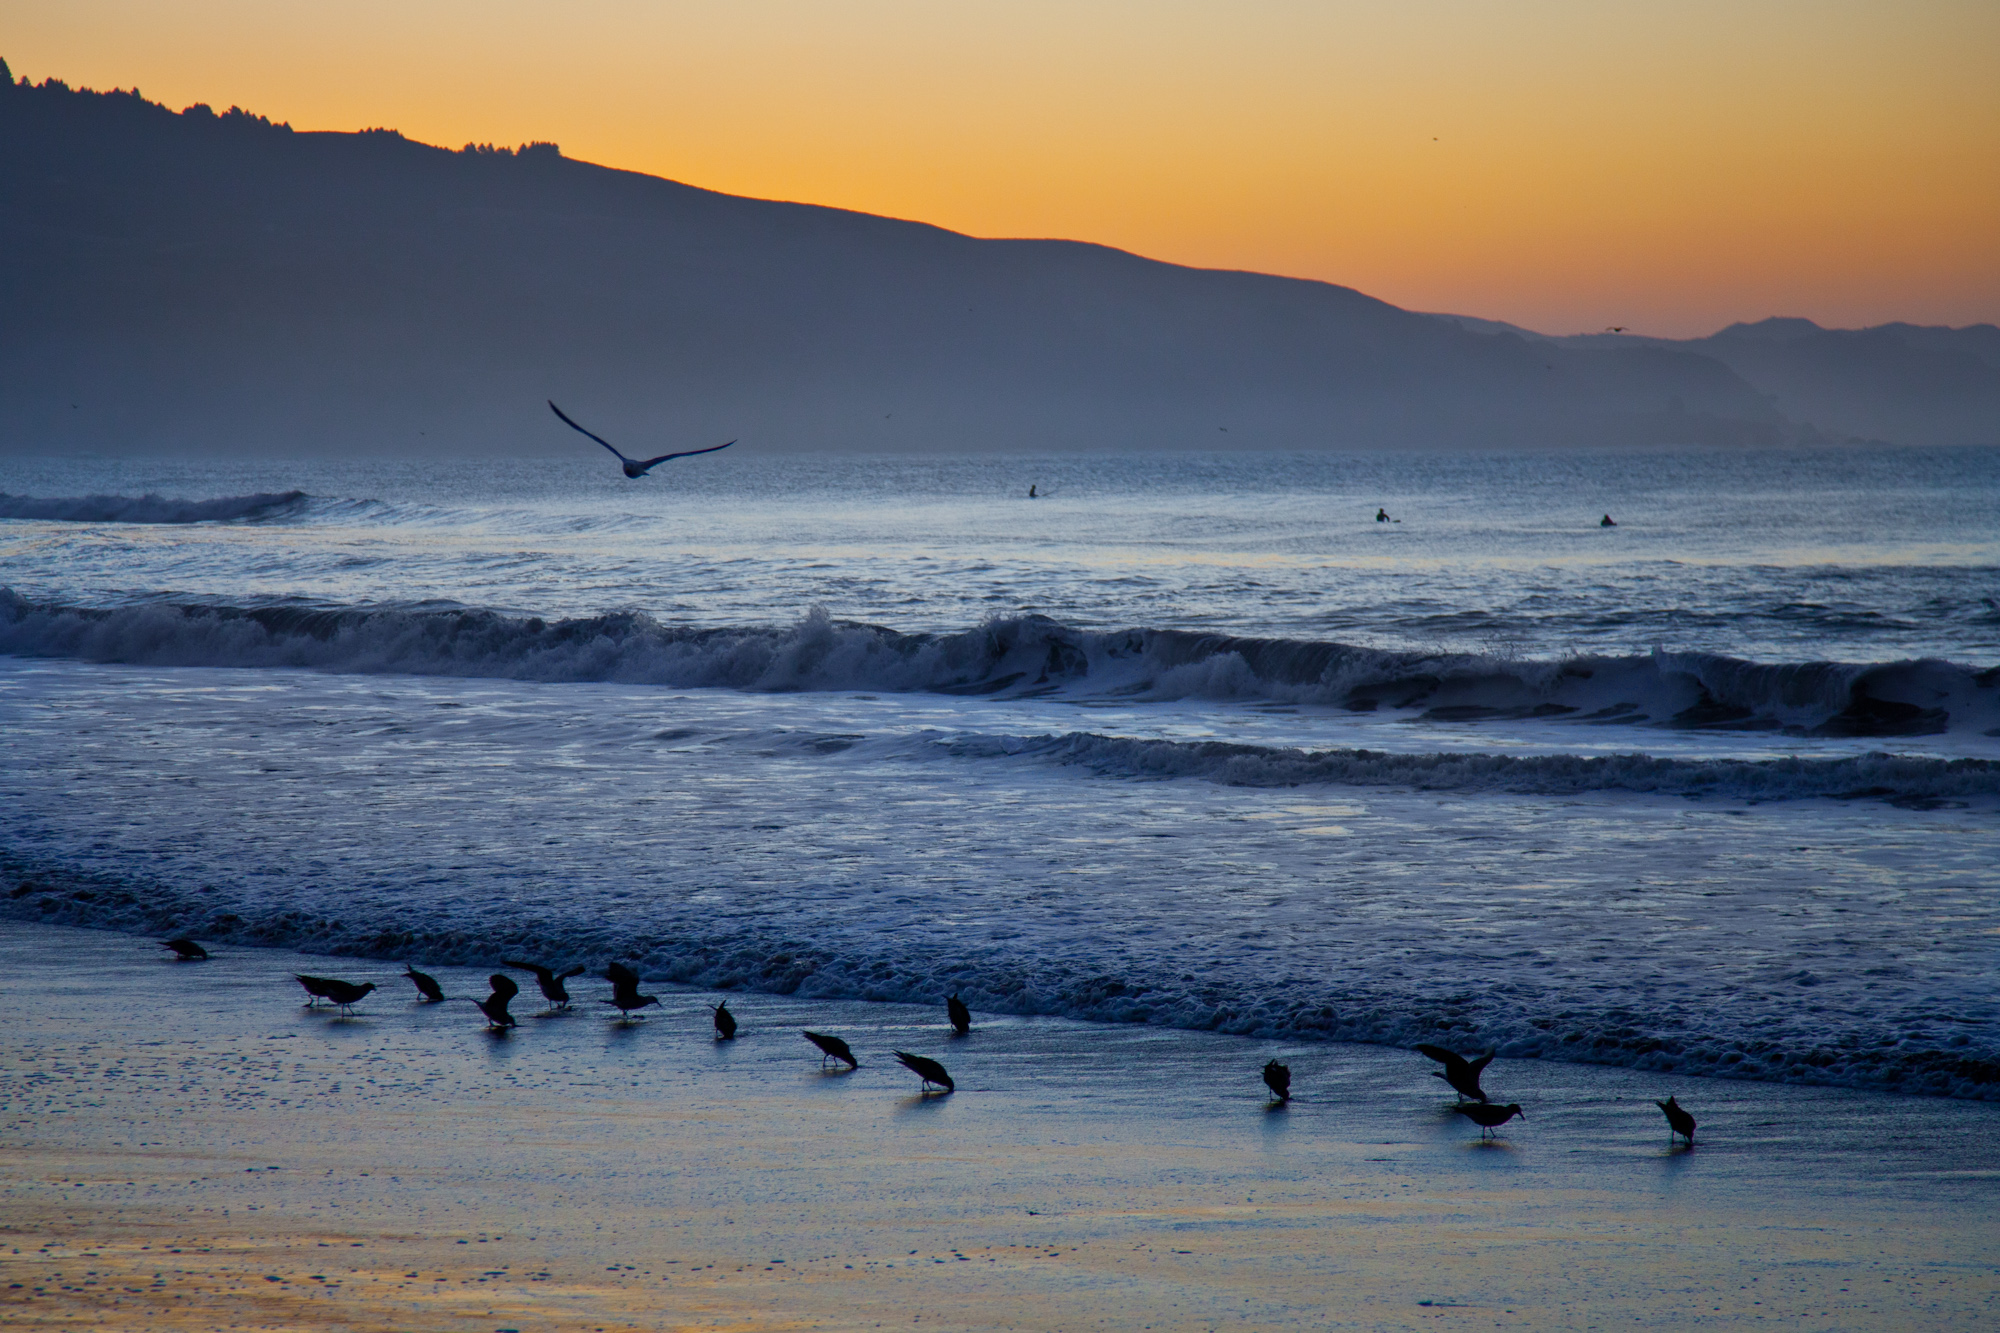 Dawn at Bolinas... the surfers were already out well before sunrise.